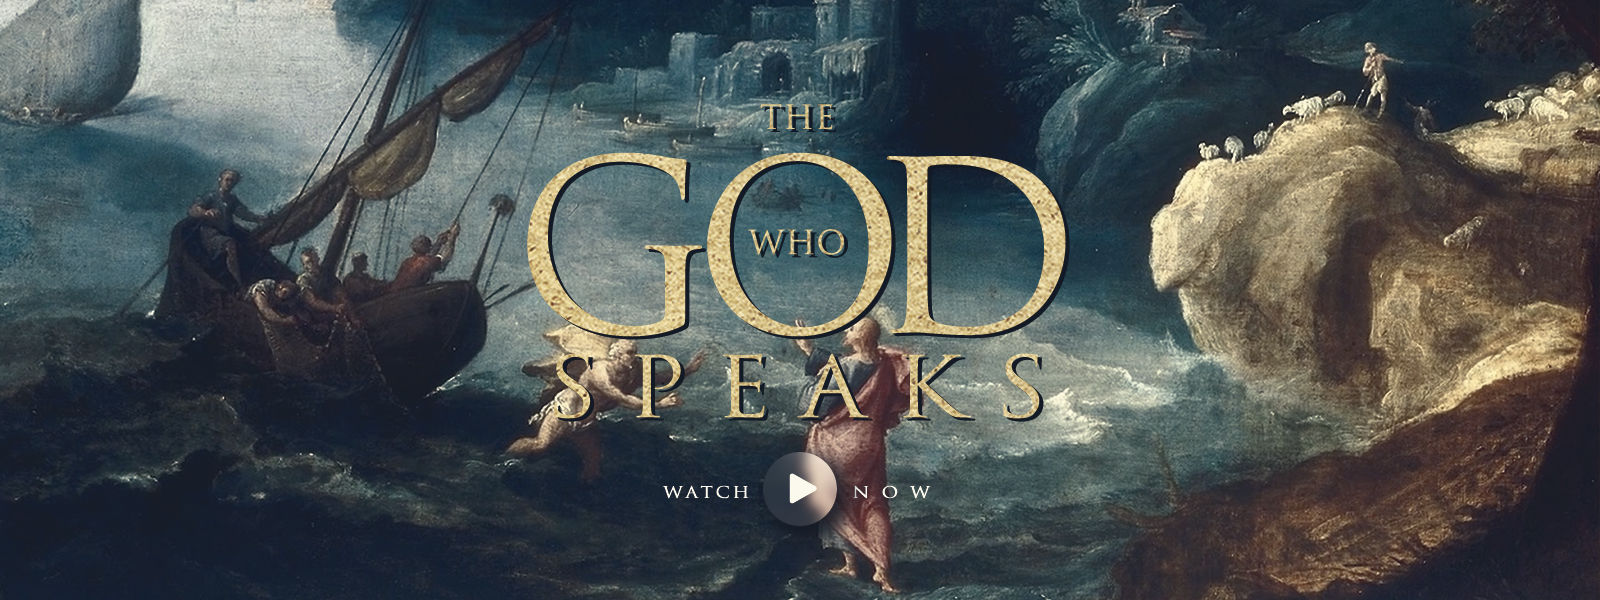 The God Who Speaks